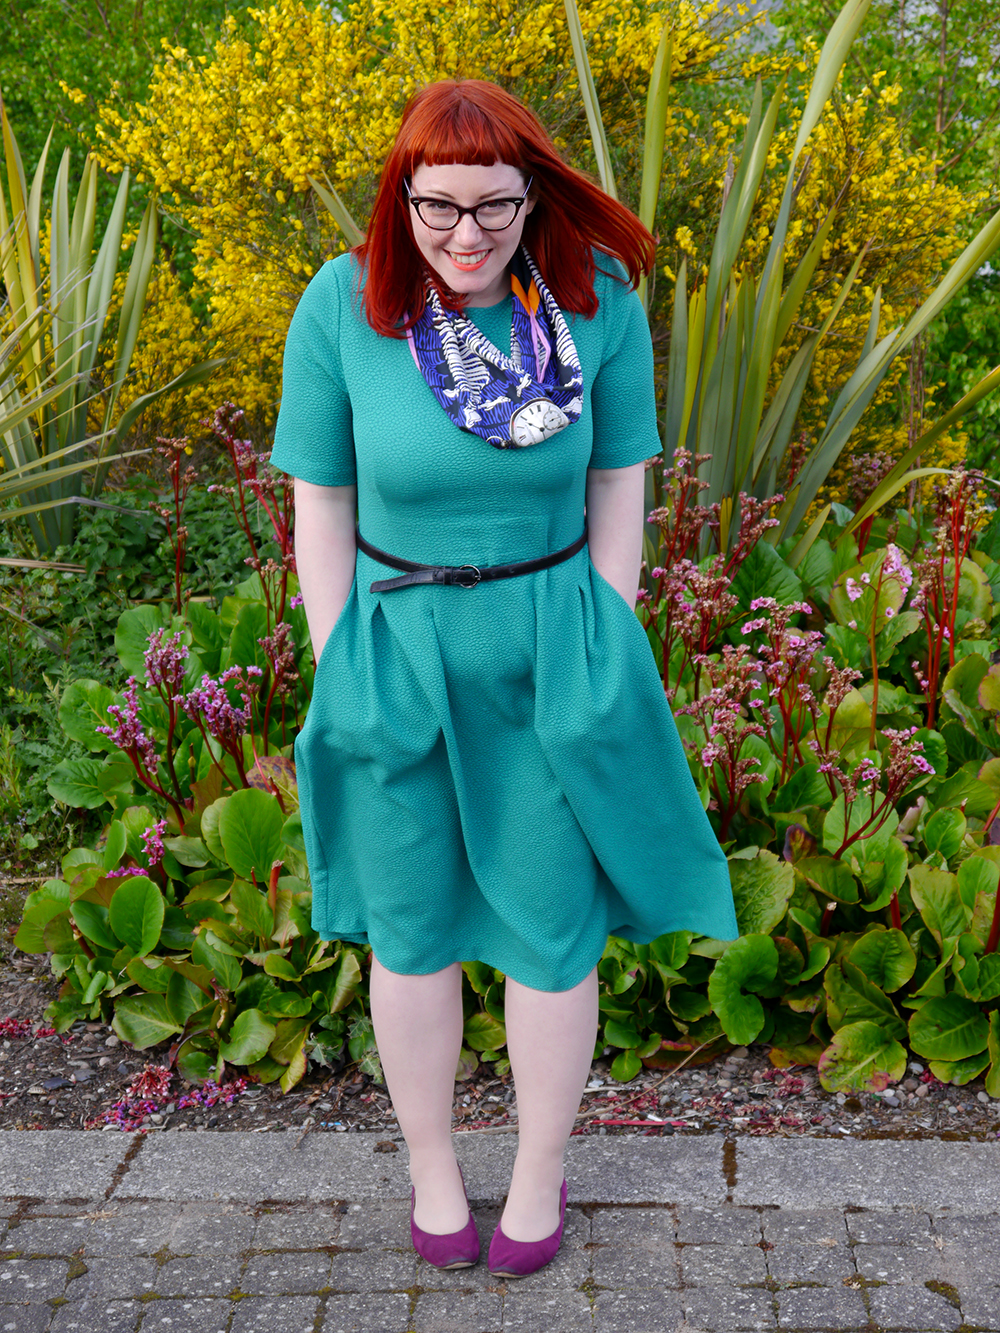 What Helen Wore, Scottish Blogger, Dundee blogger, what's on in Dundee, Duncan of Jordanstone College of Art and Design, Degree Show 2015, DJCAD Degree Show 2015, Claire Corstorphine Luxury Scarf, H&M green textured dress, red head, ginger, Scottish style